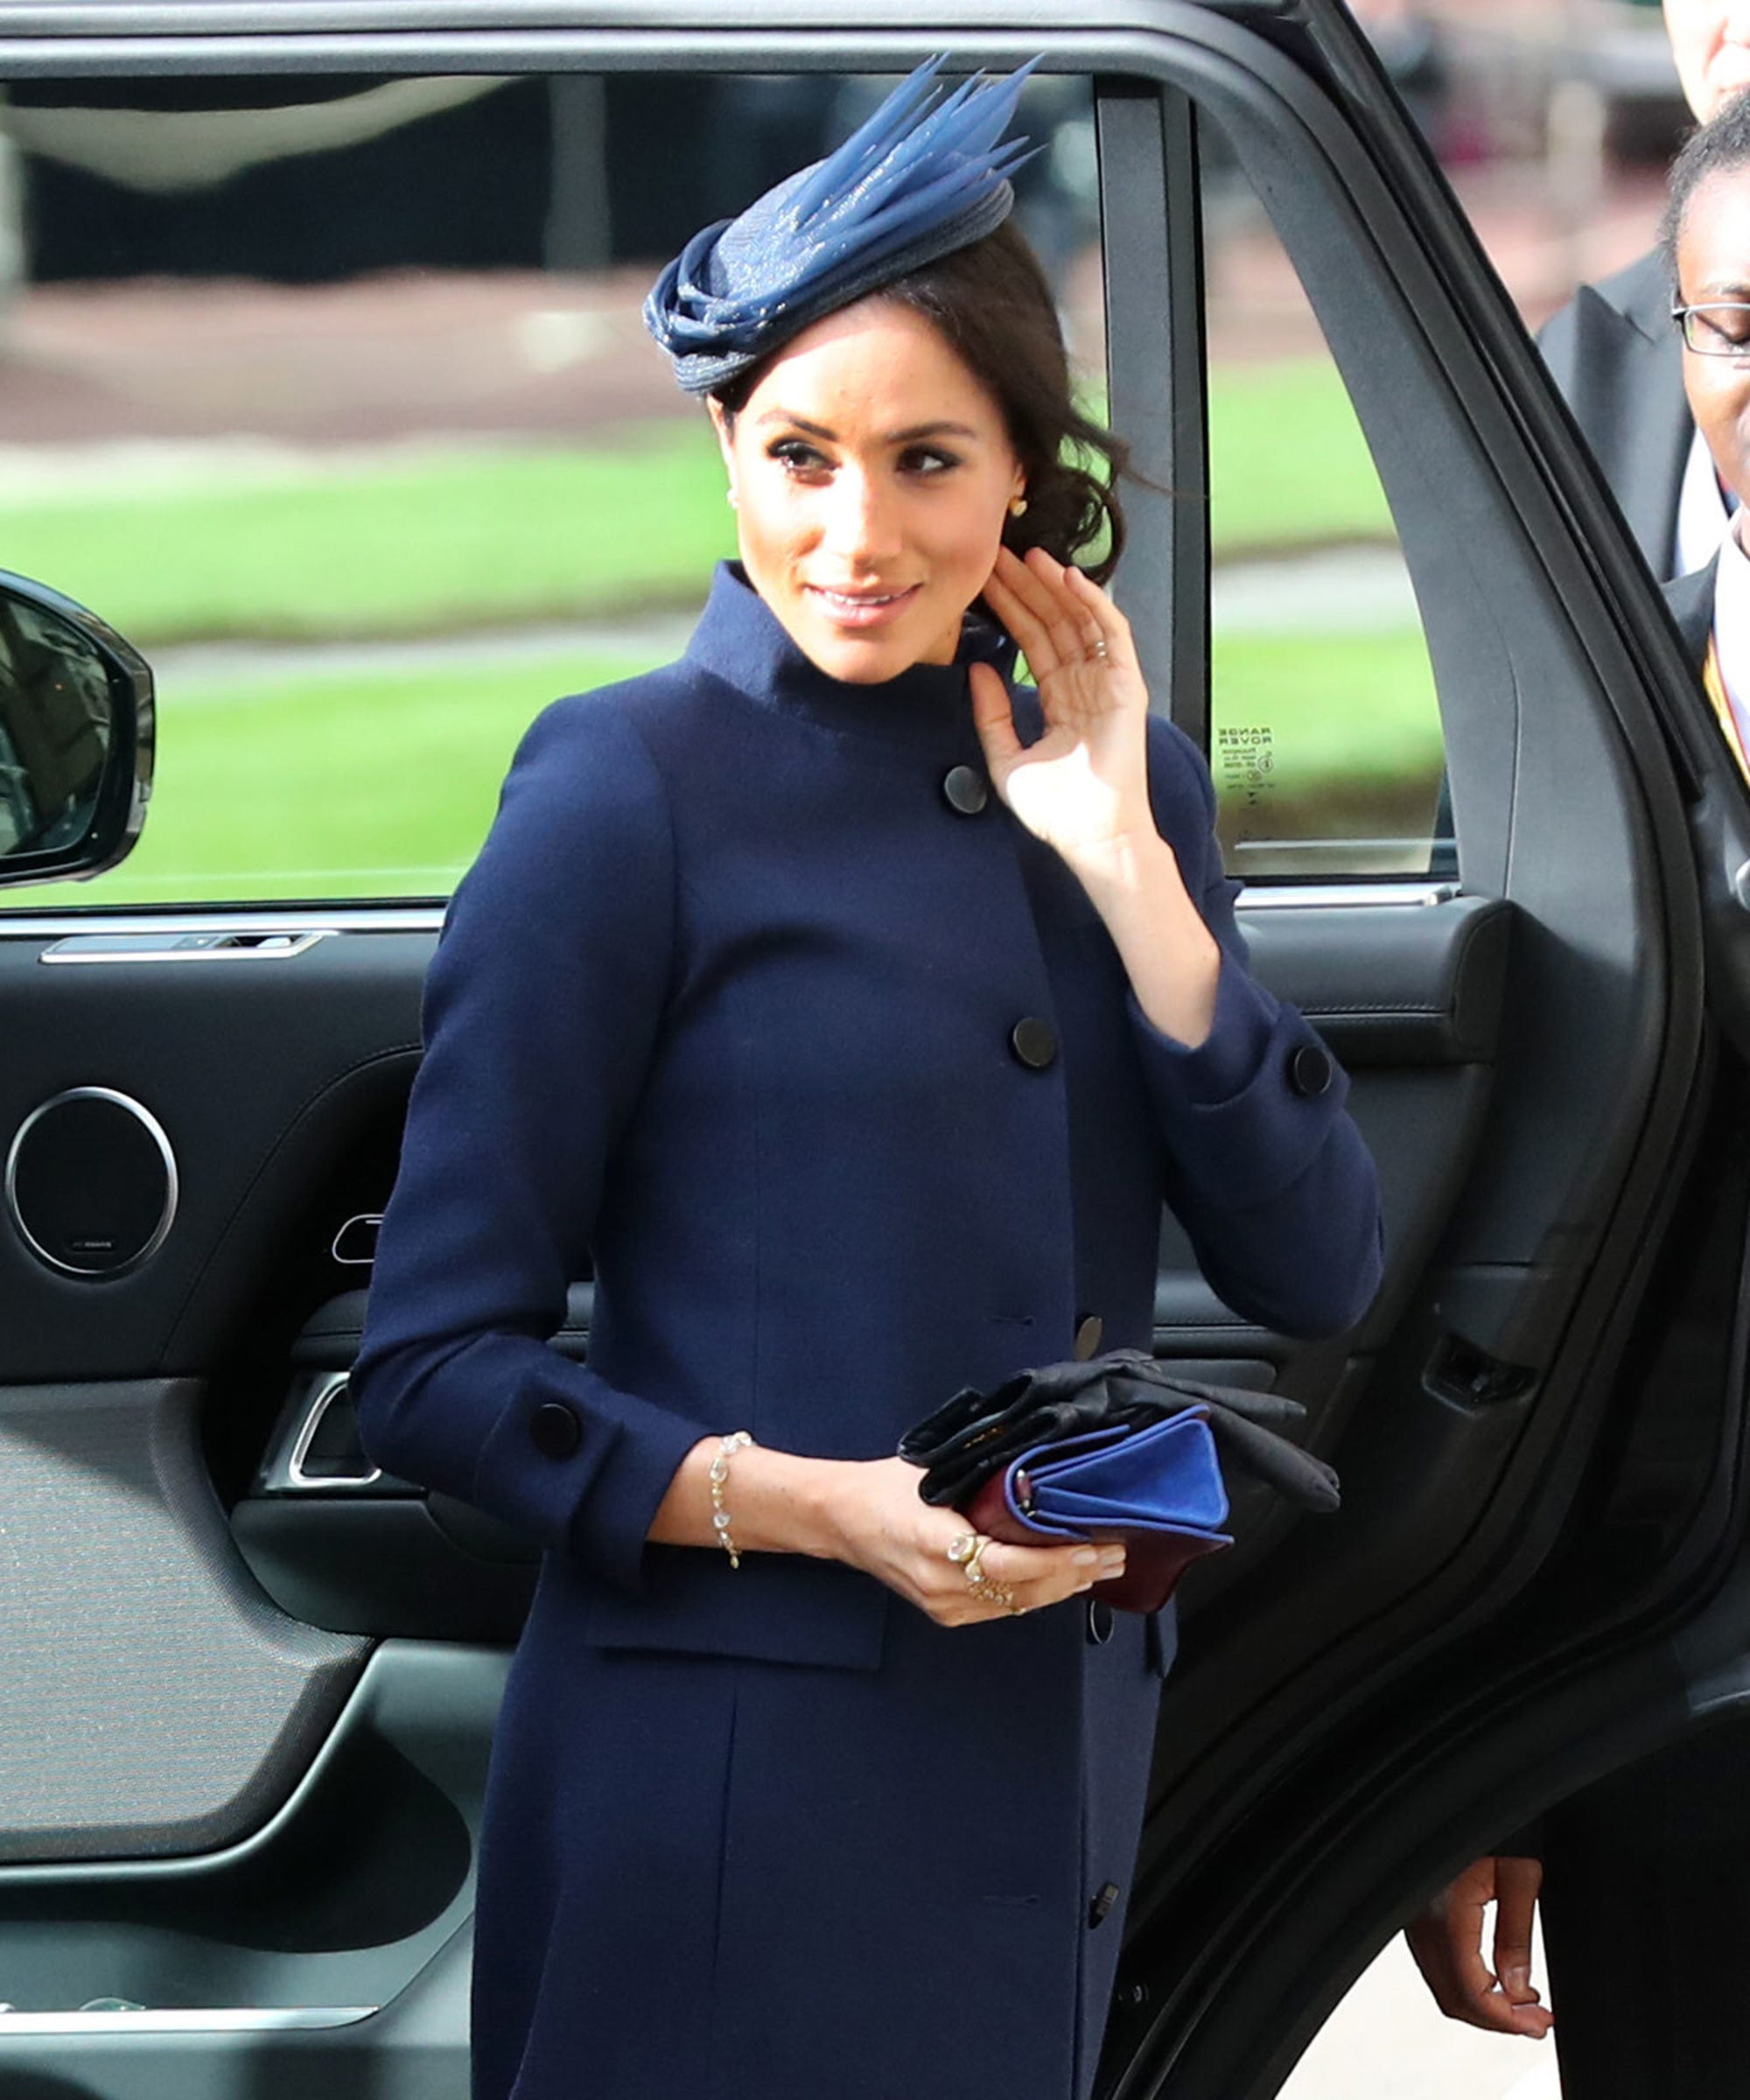 Meghan Markle Wore A Coat To The Wedding Which Means She Must Be Pregnant Right